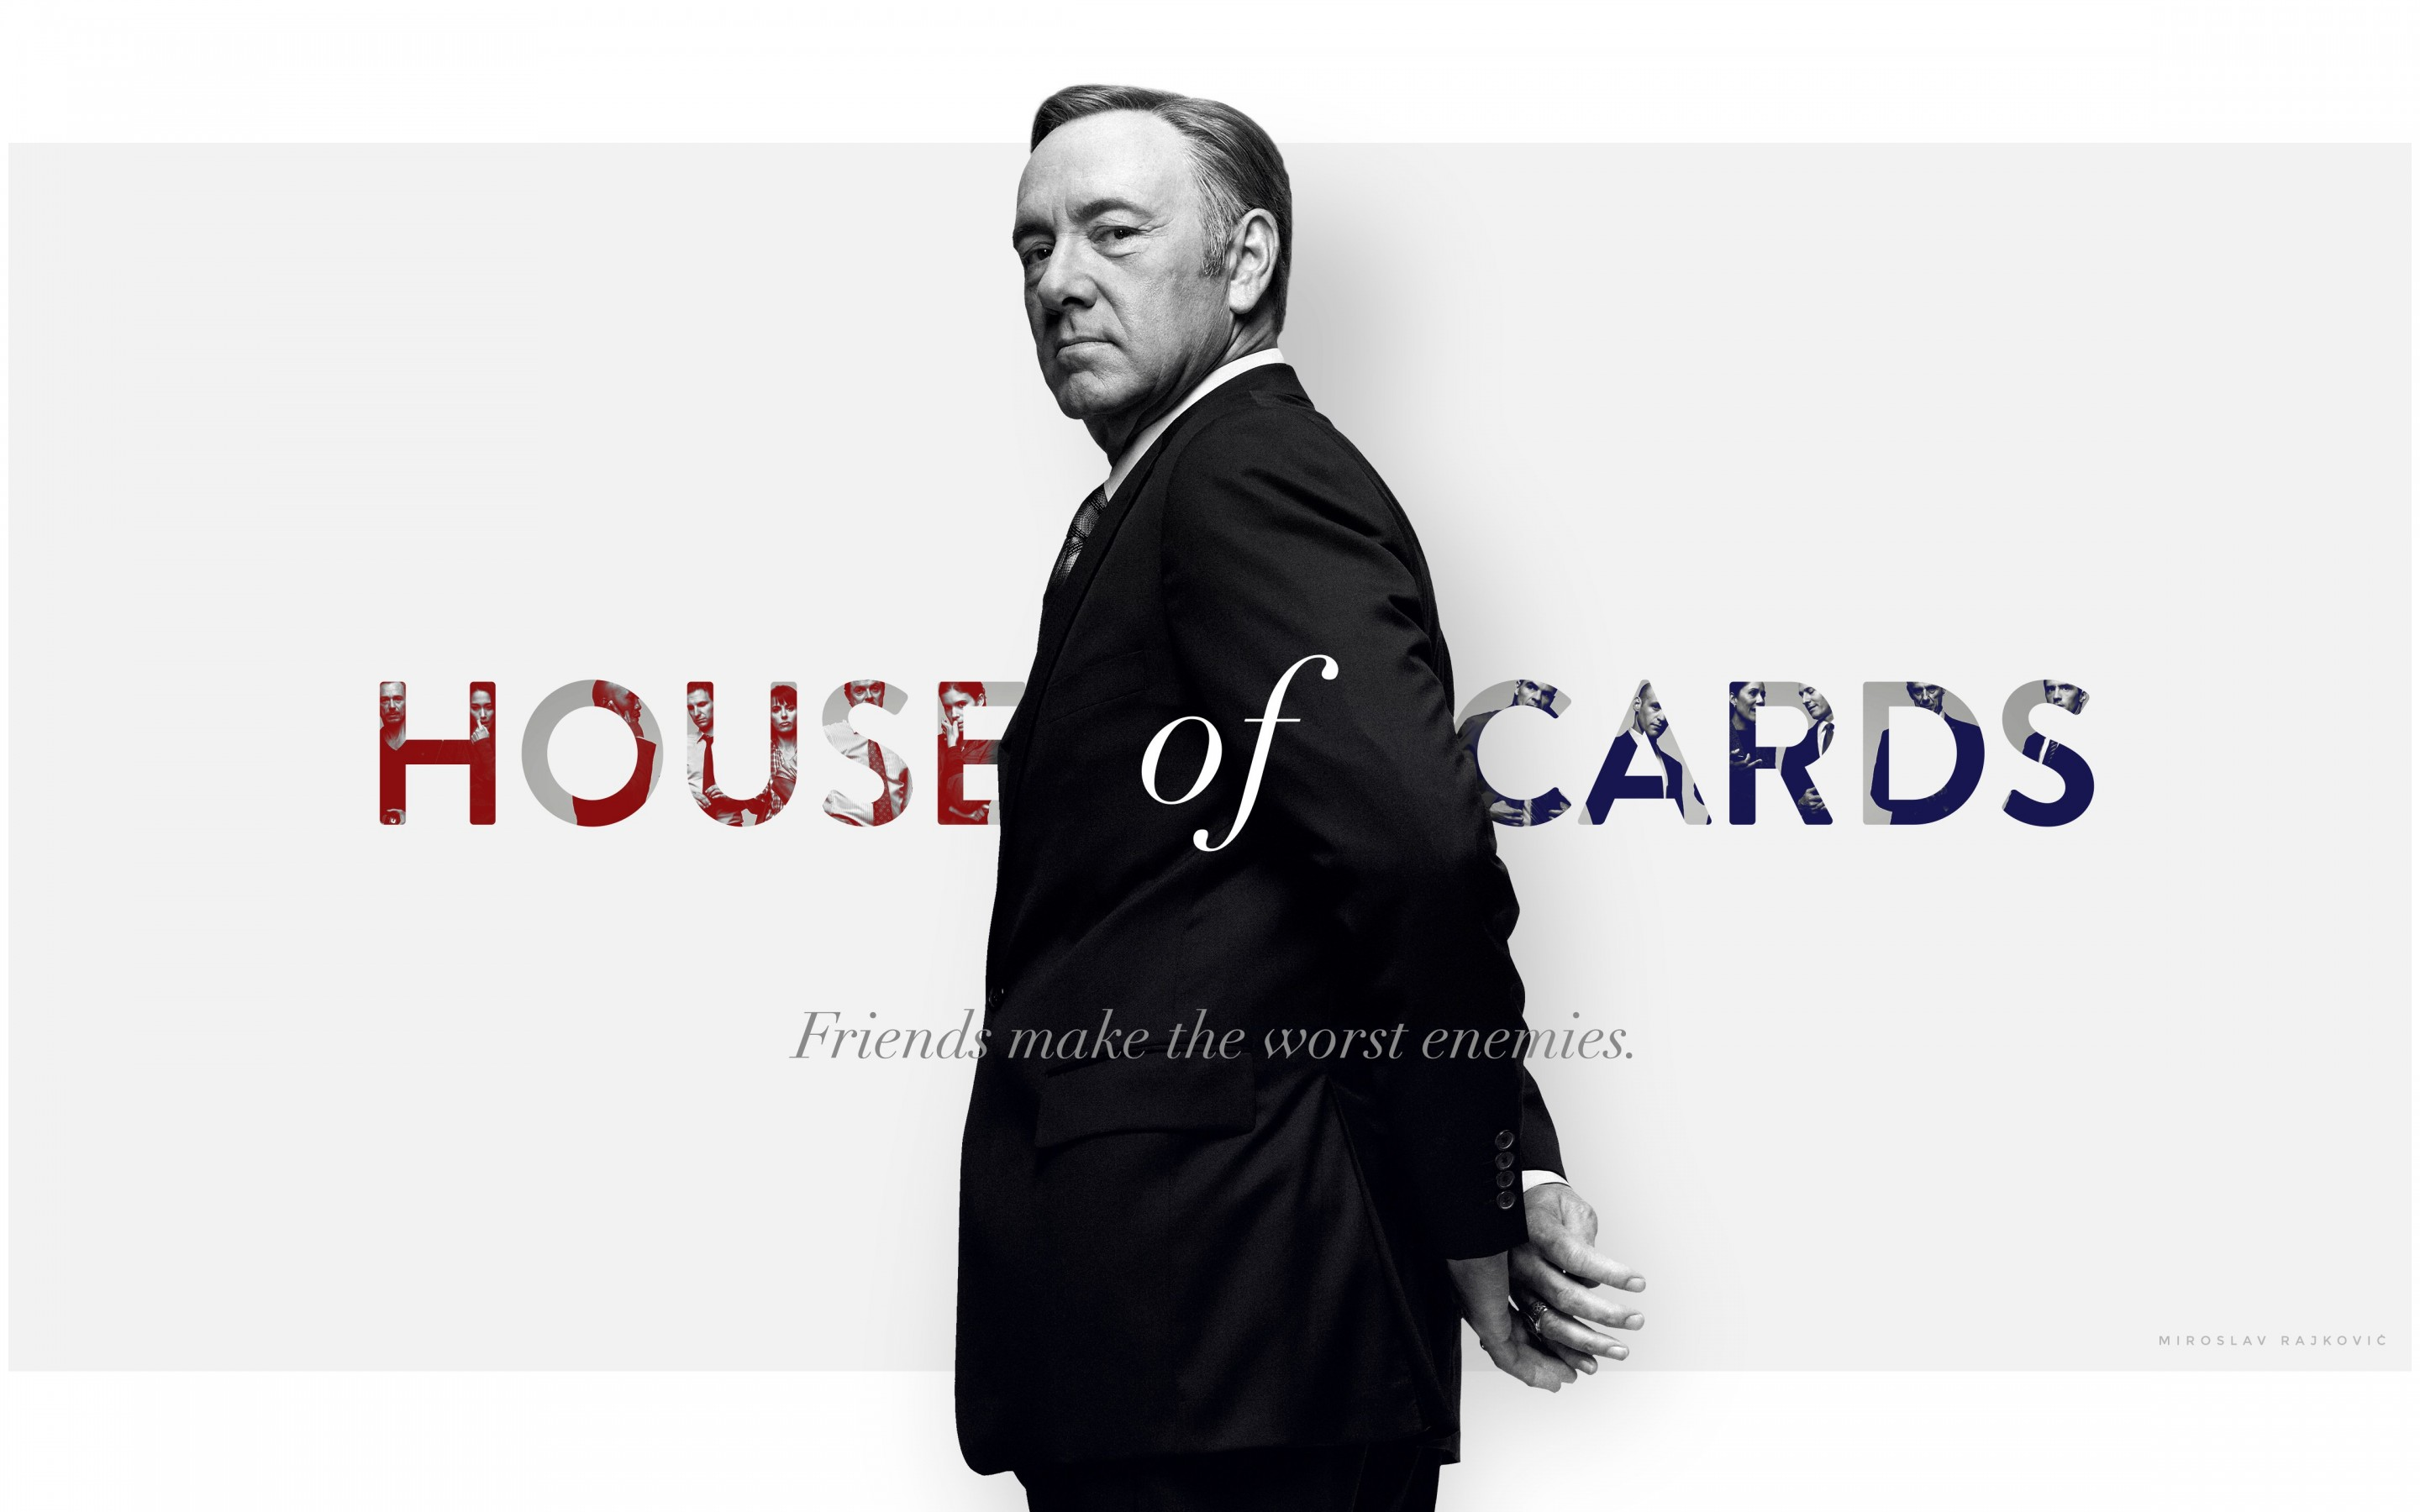 Frank Underwood - House of Cards Wallpaper for Desktop 2880x1800